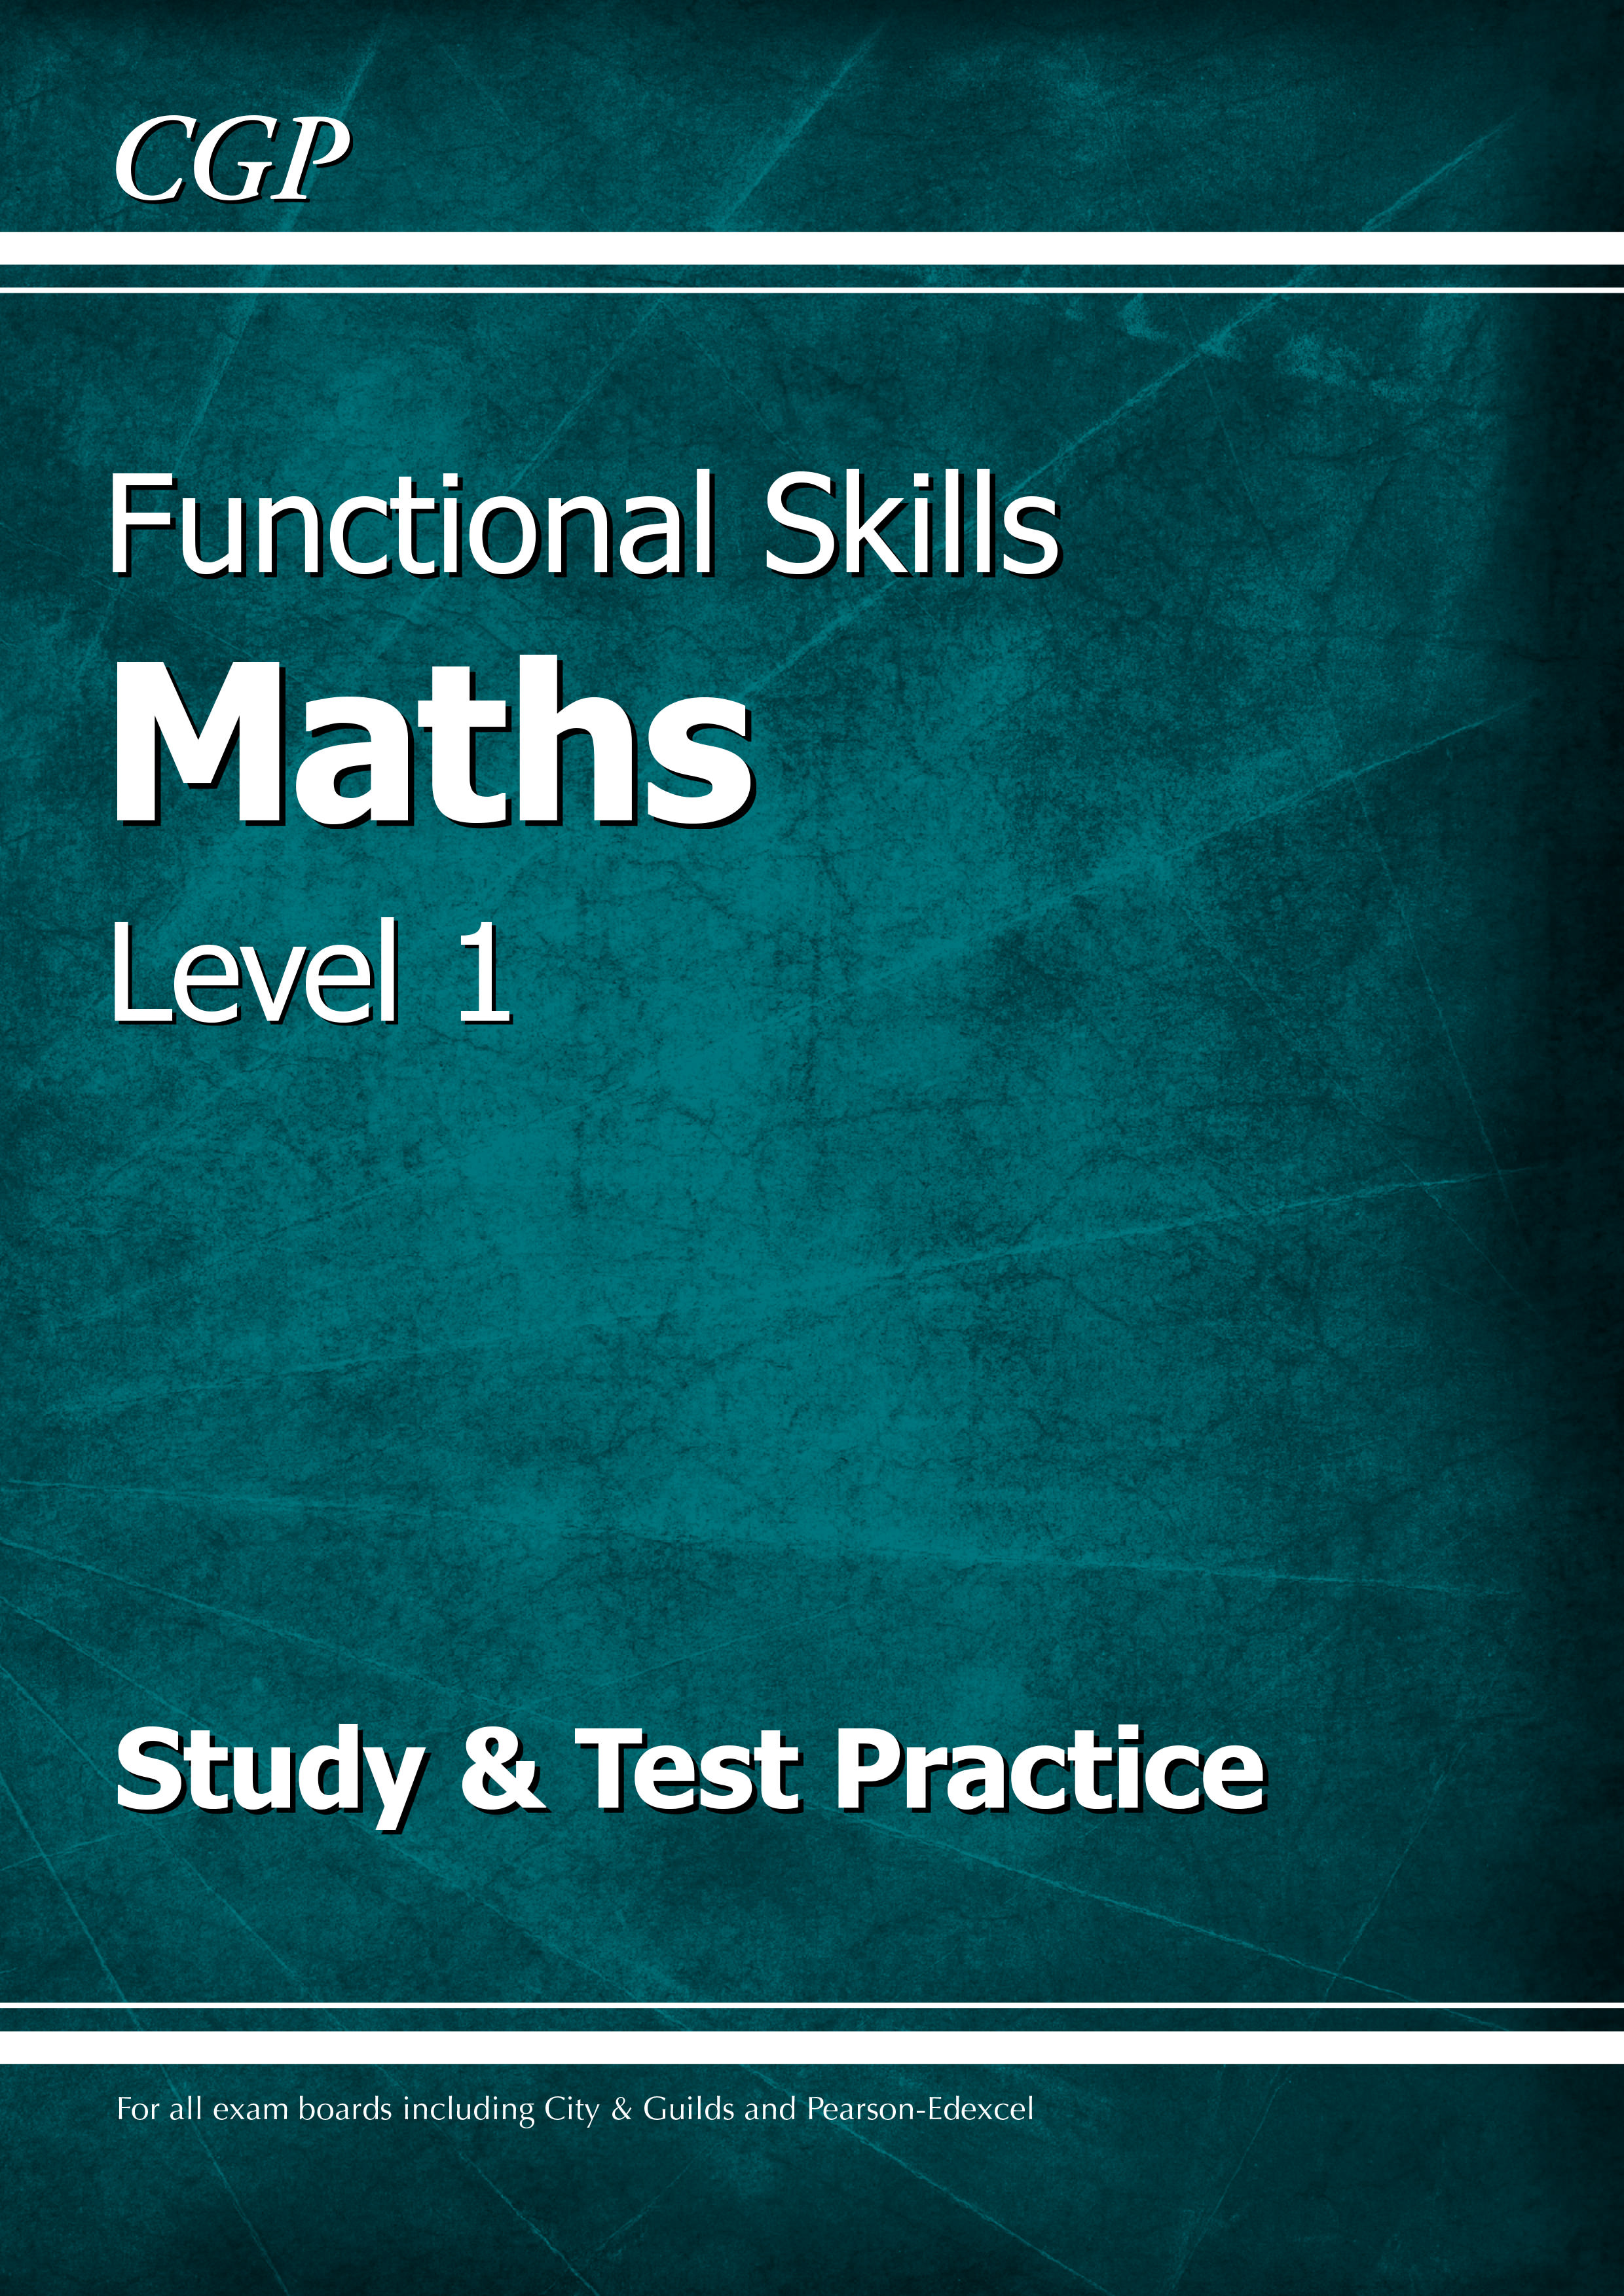 M1SRA2DK - Functional Skills Maths Level 1 - Study & Test Practice